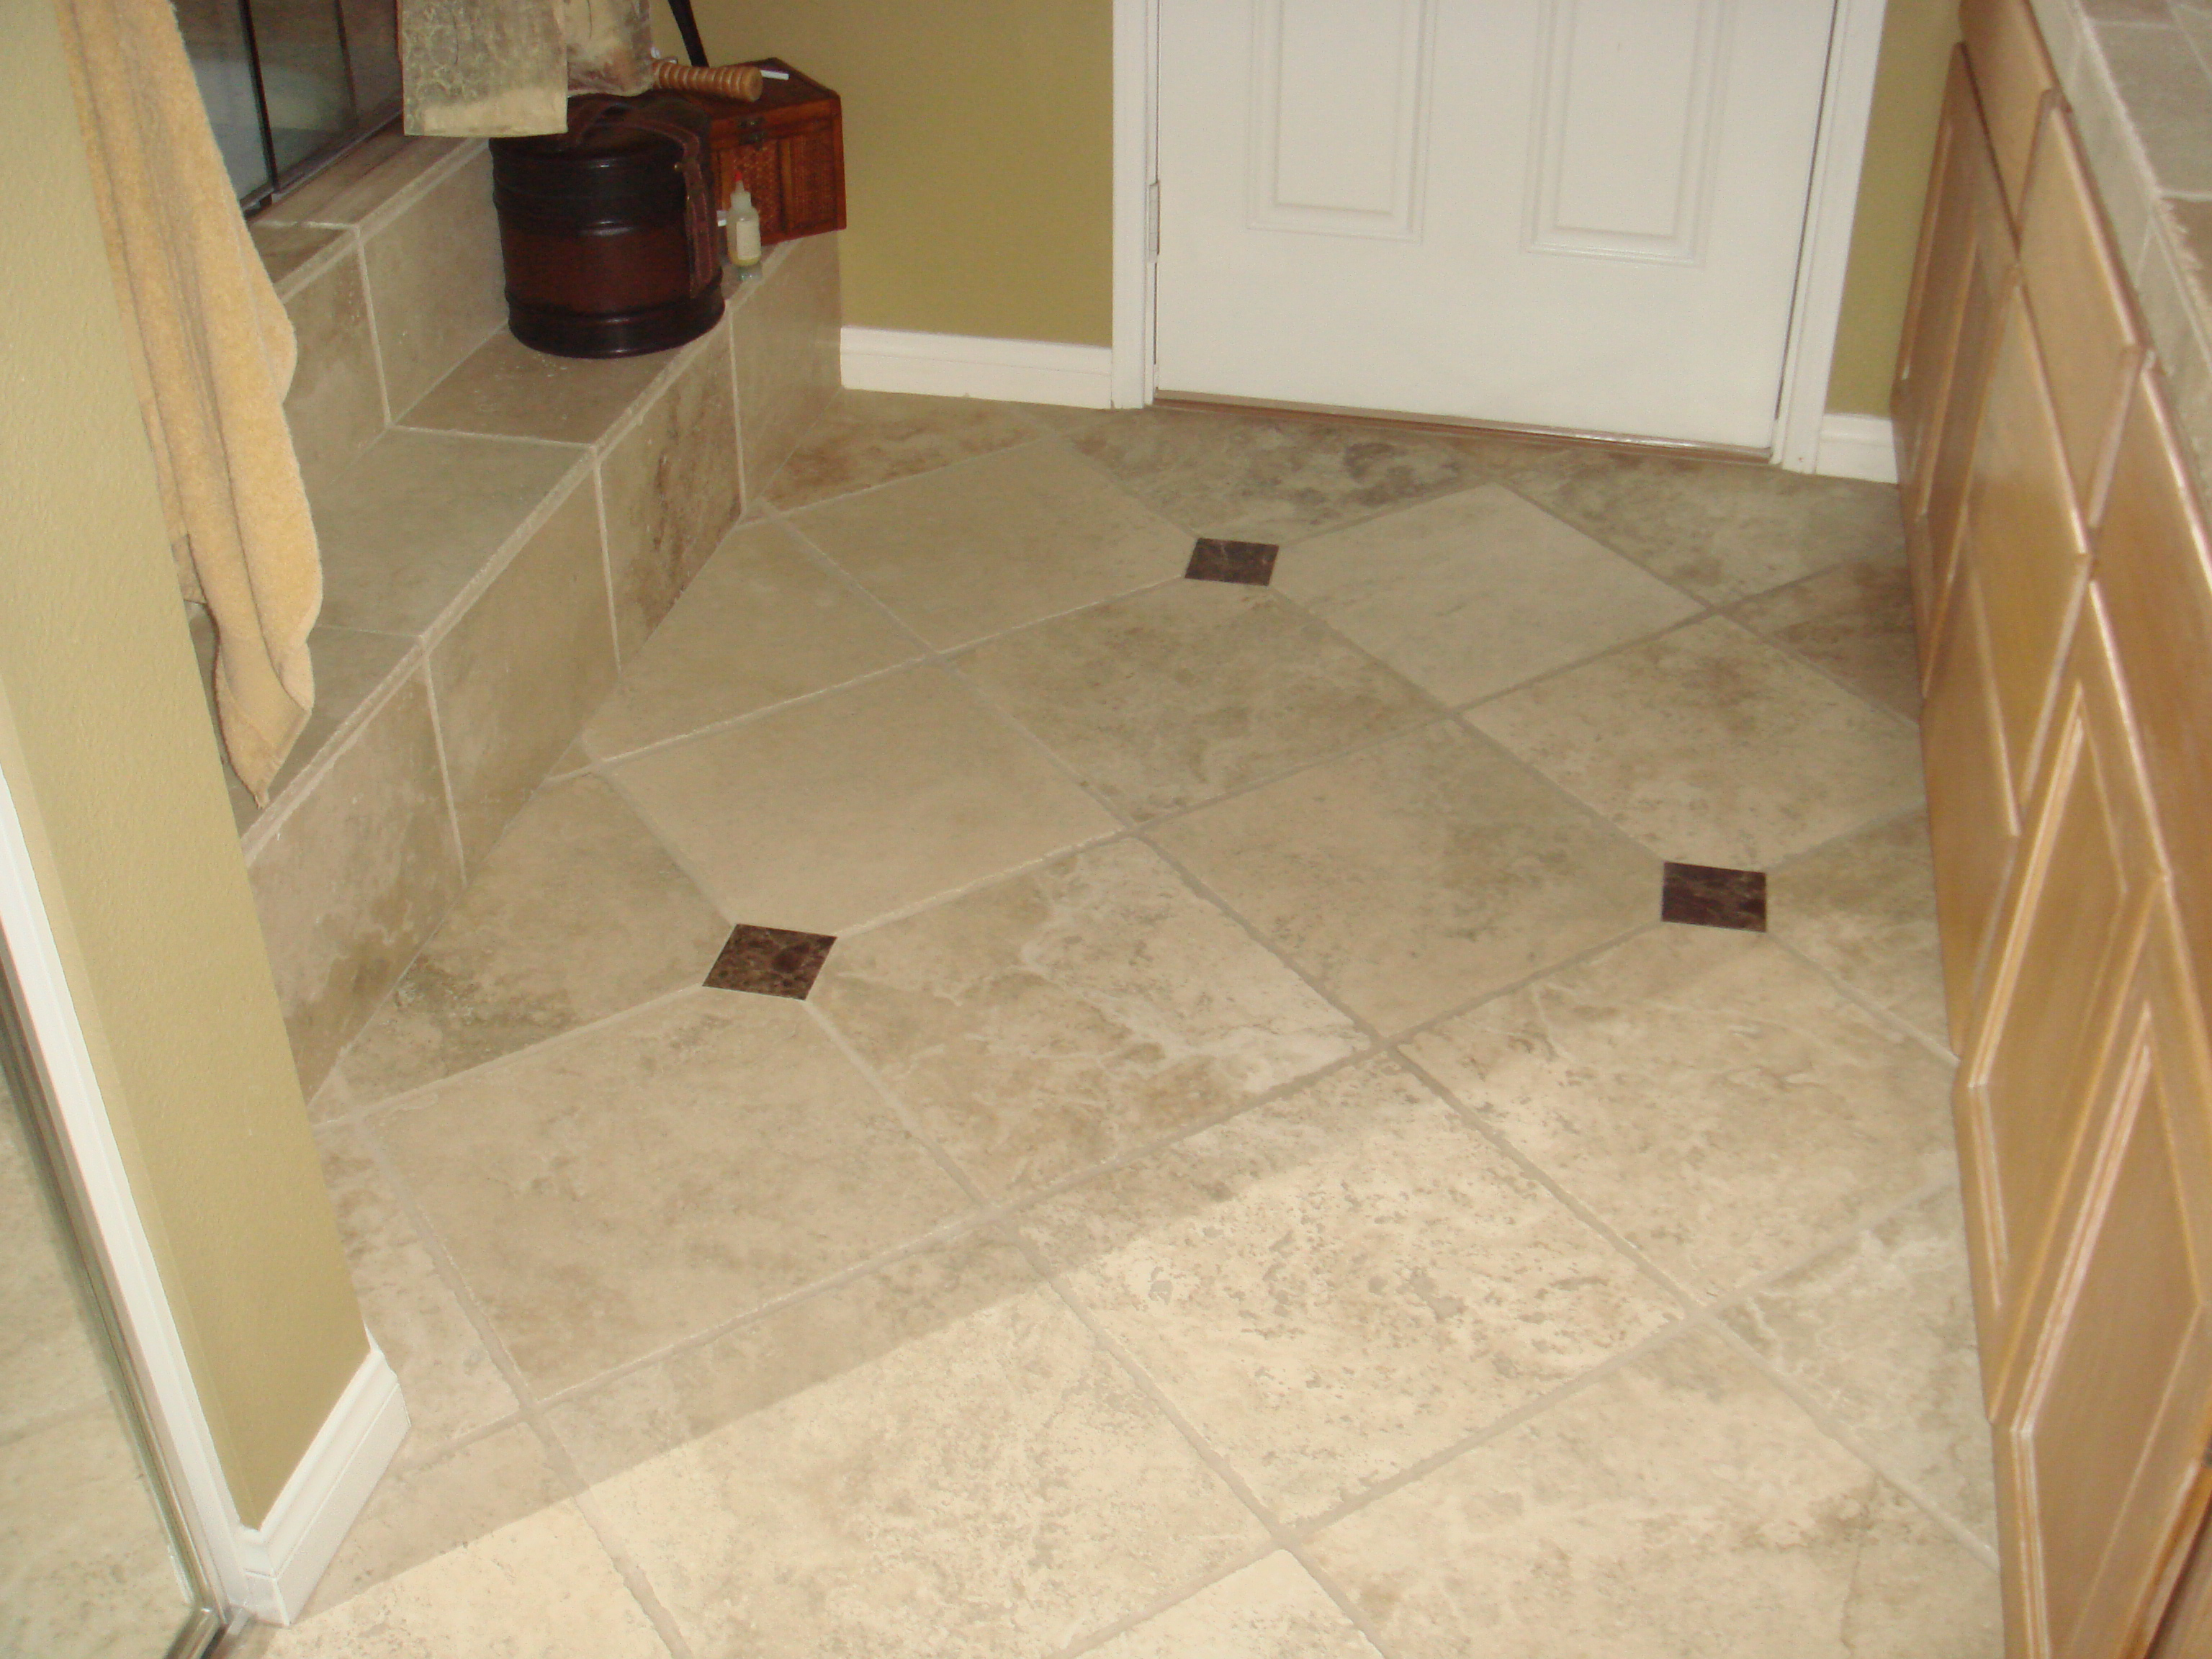 Floor Tile Layout Patterns : Amazing ideas and pictures of the best vinyl tiles for